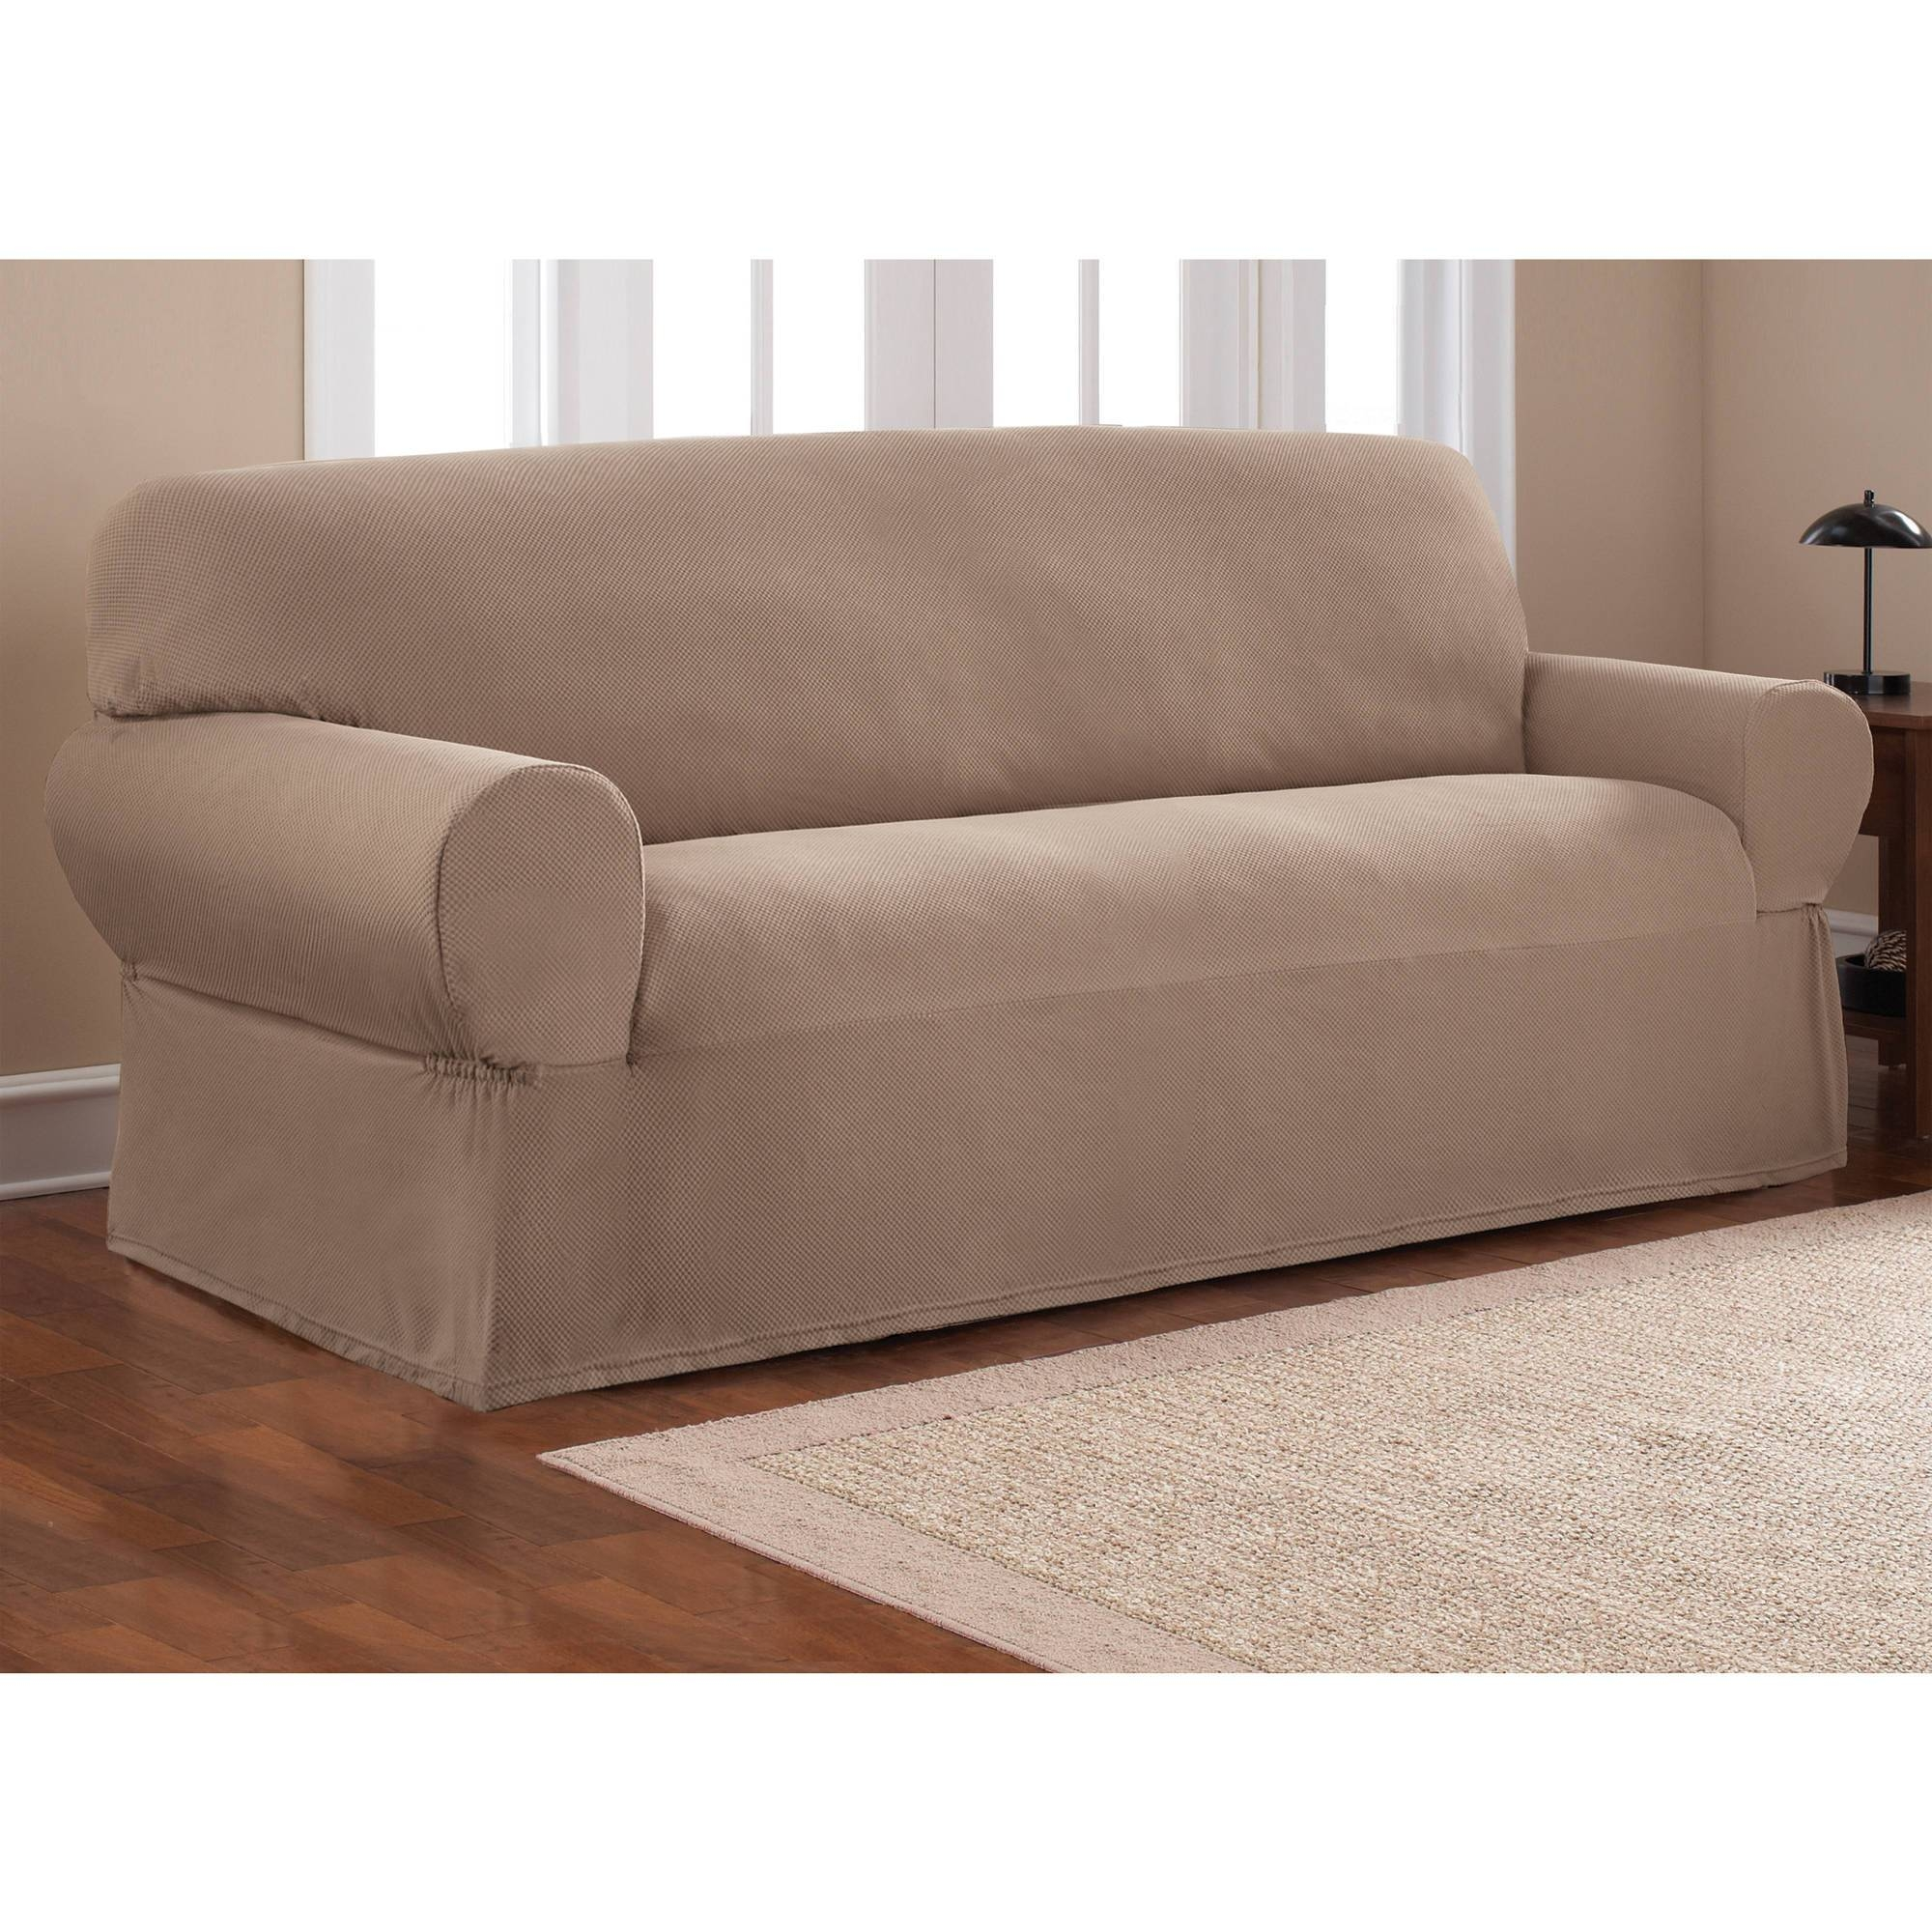 Mainstays 1 Piece Stretch Fabric Sofa Slipcover – Walmart Intended For Sofa Settee Covers (View 19 of 30)